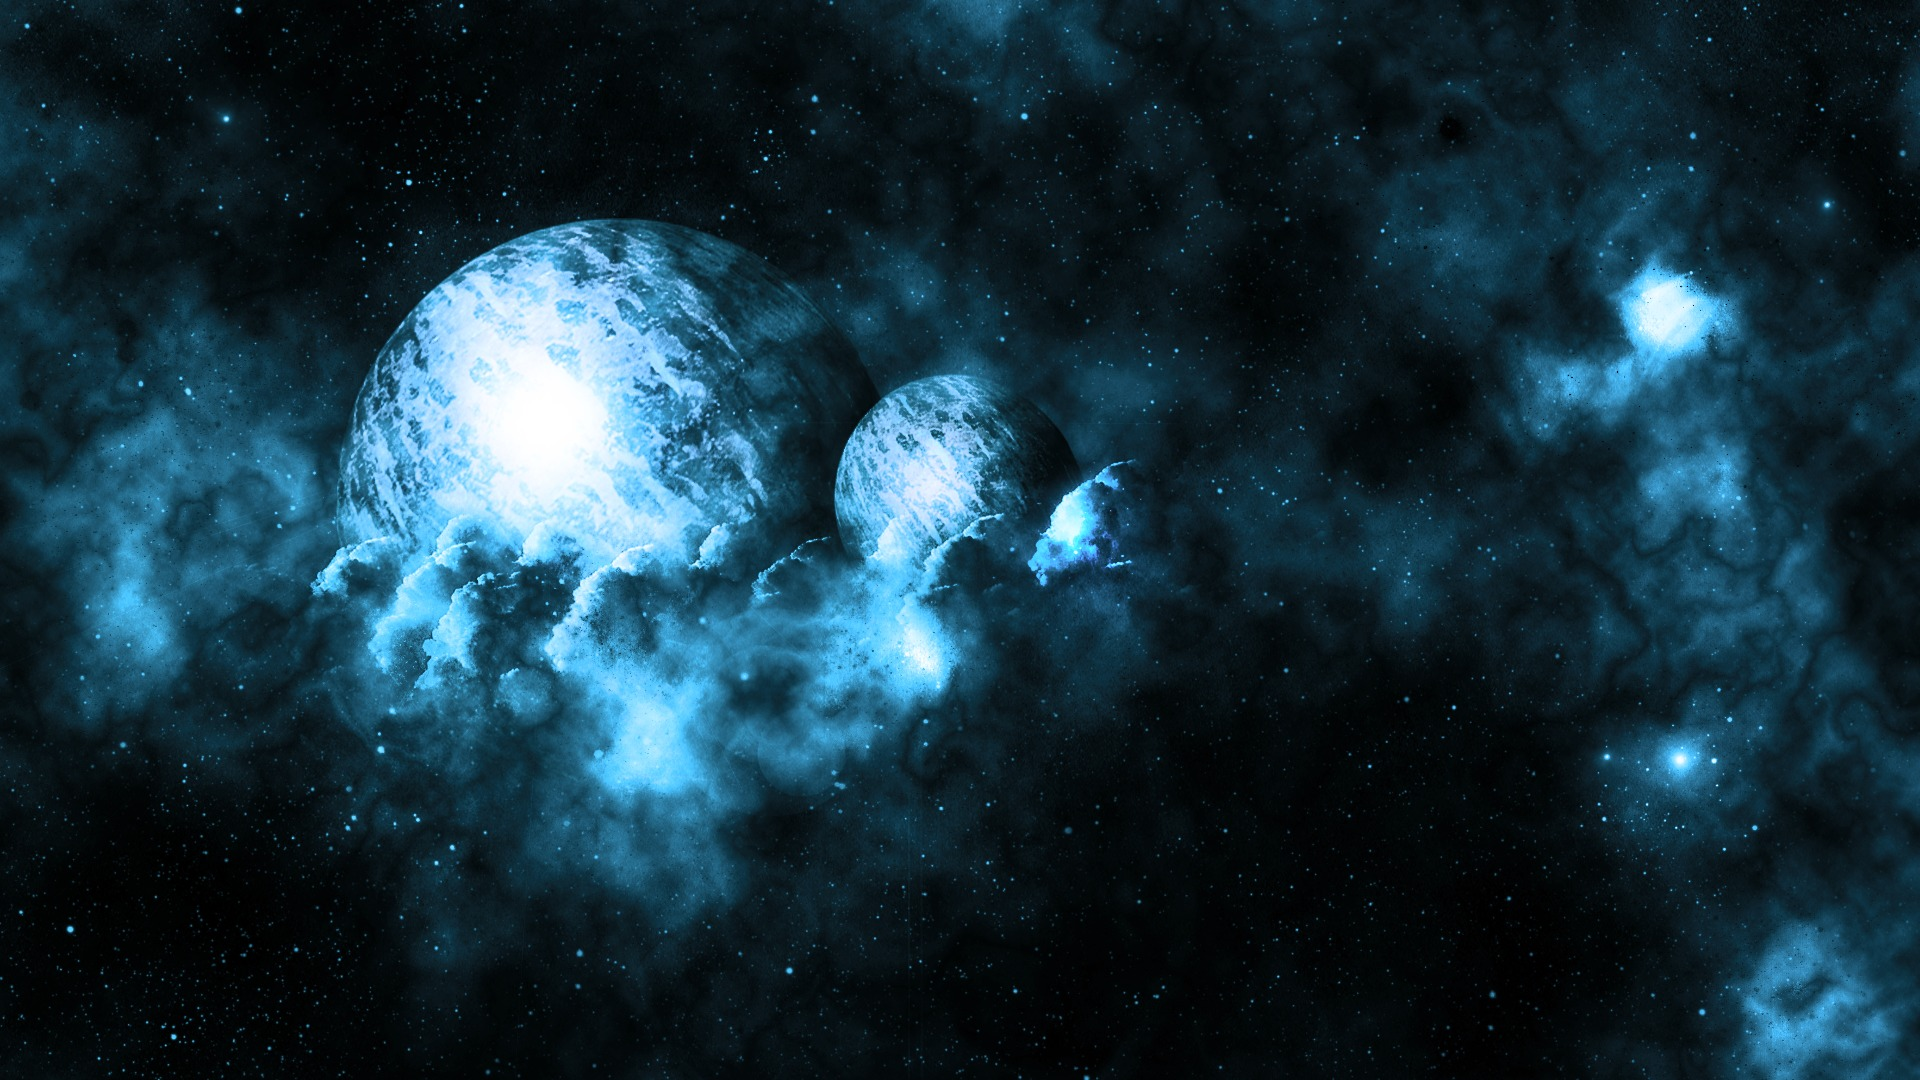 Space planets planet nebula stars wallpaper | 1920x1080 ...